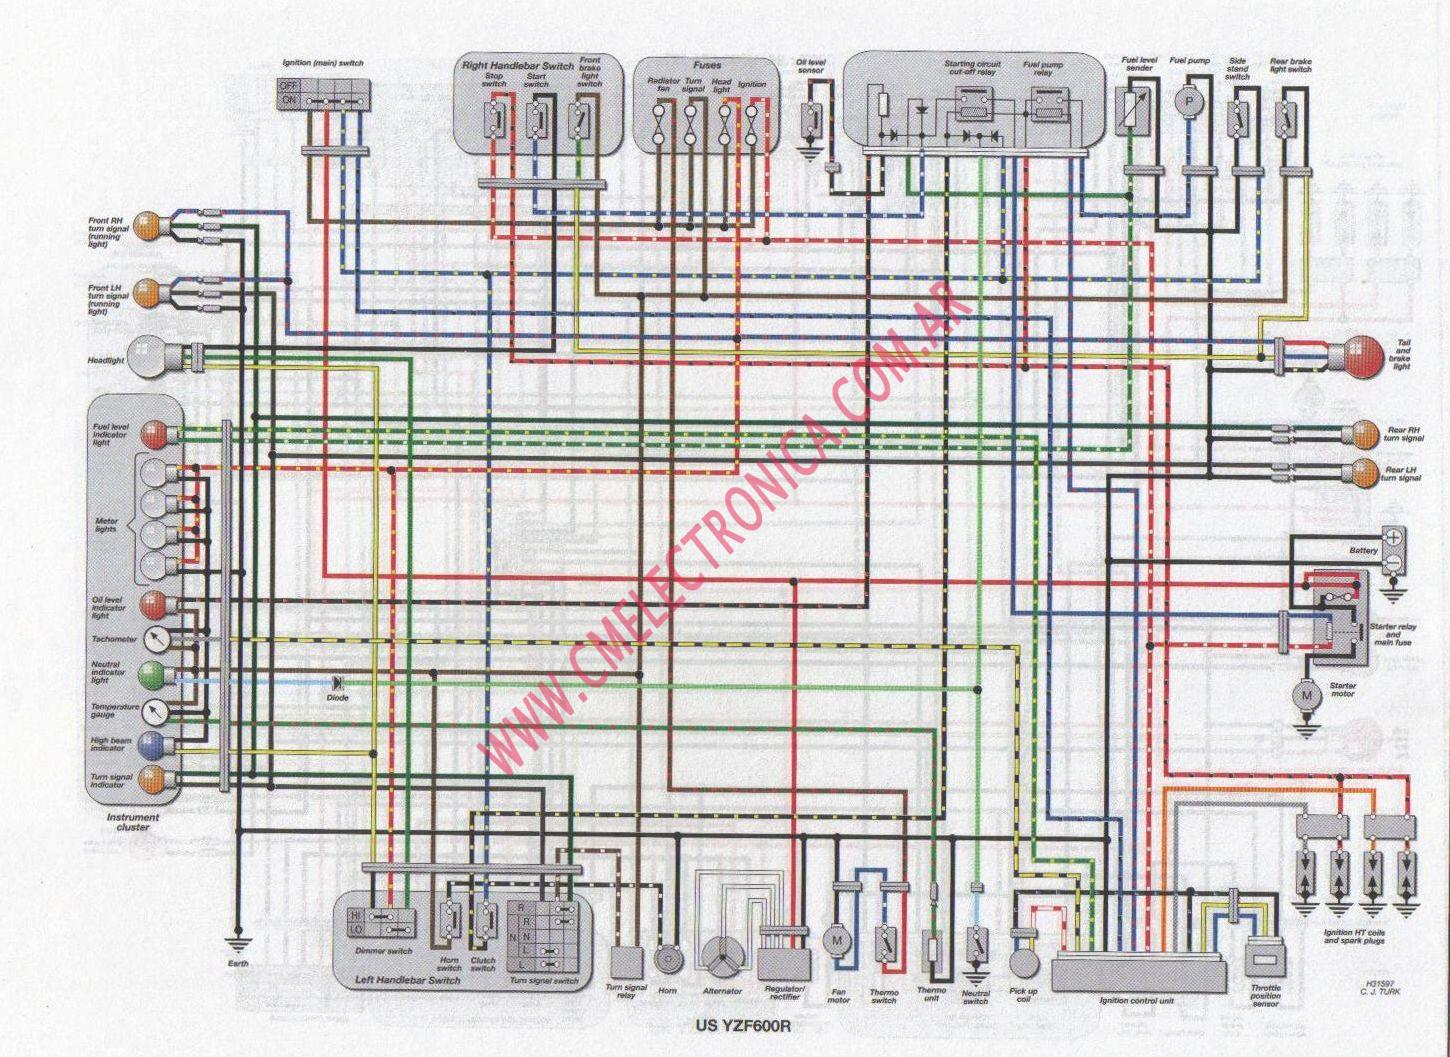 DIAGRAM] 1981 Yamaha Virago Xv750 Ignition Wiring Diagram FULL Version HD  Quality Wiring Diagram - MC33926SCHEMATIC5374.CONTOROCK.IT